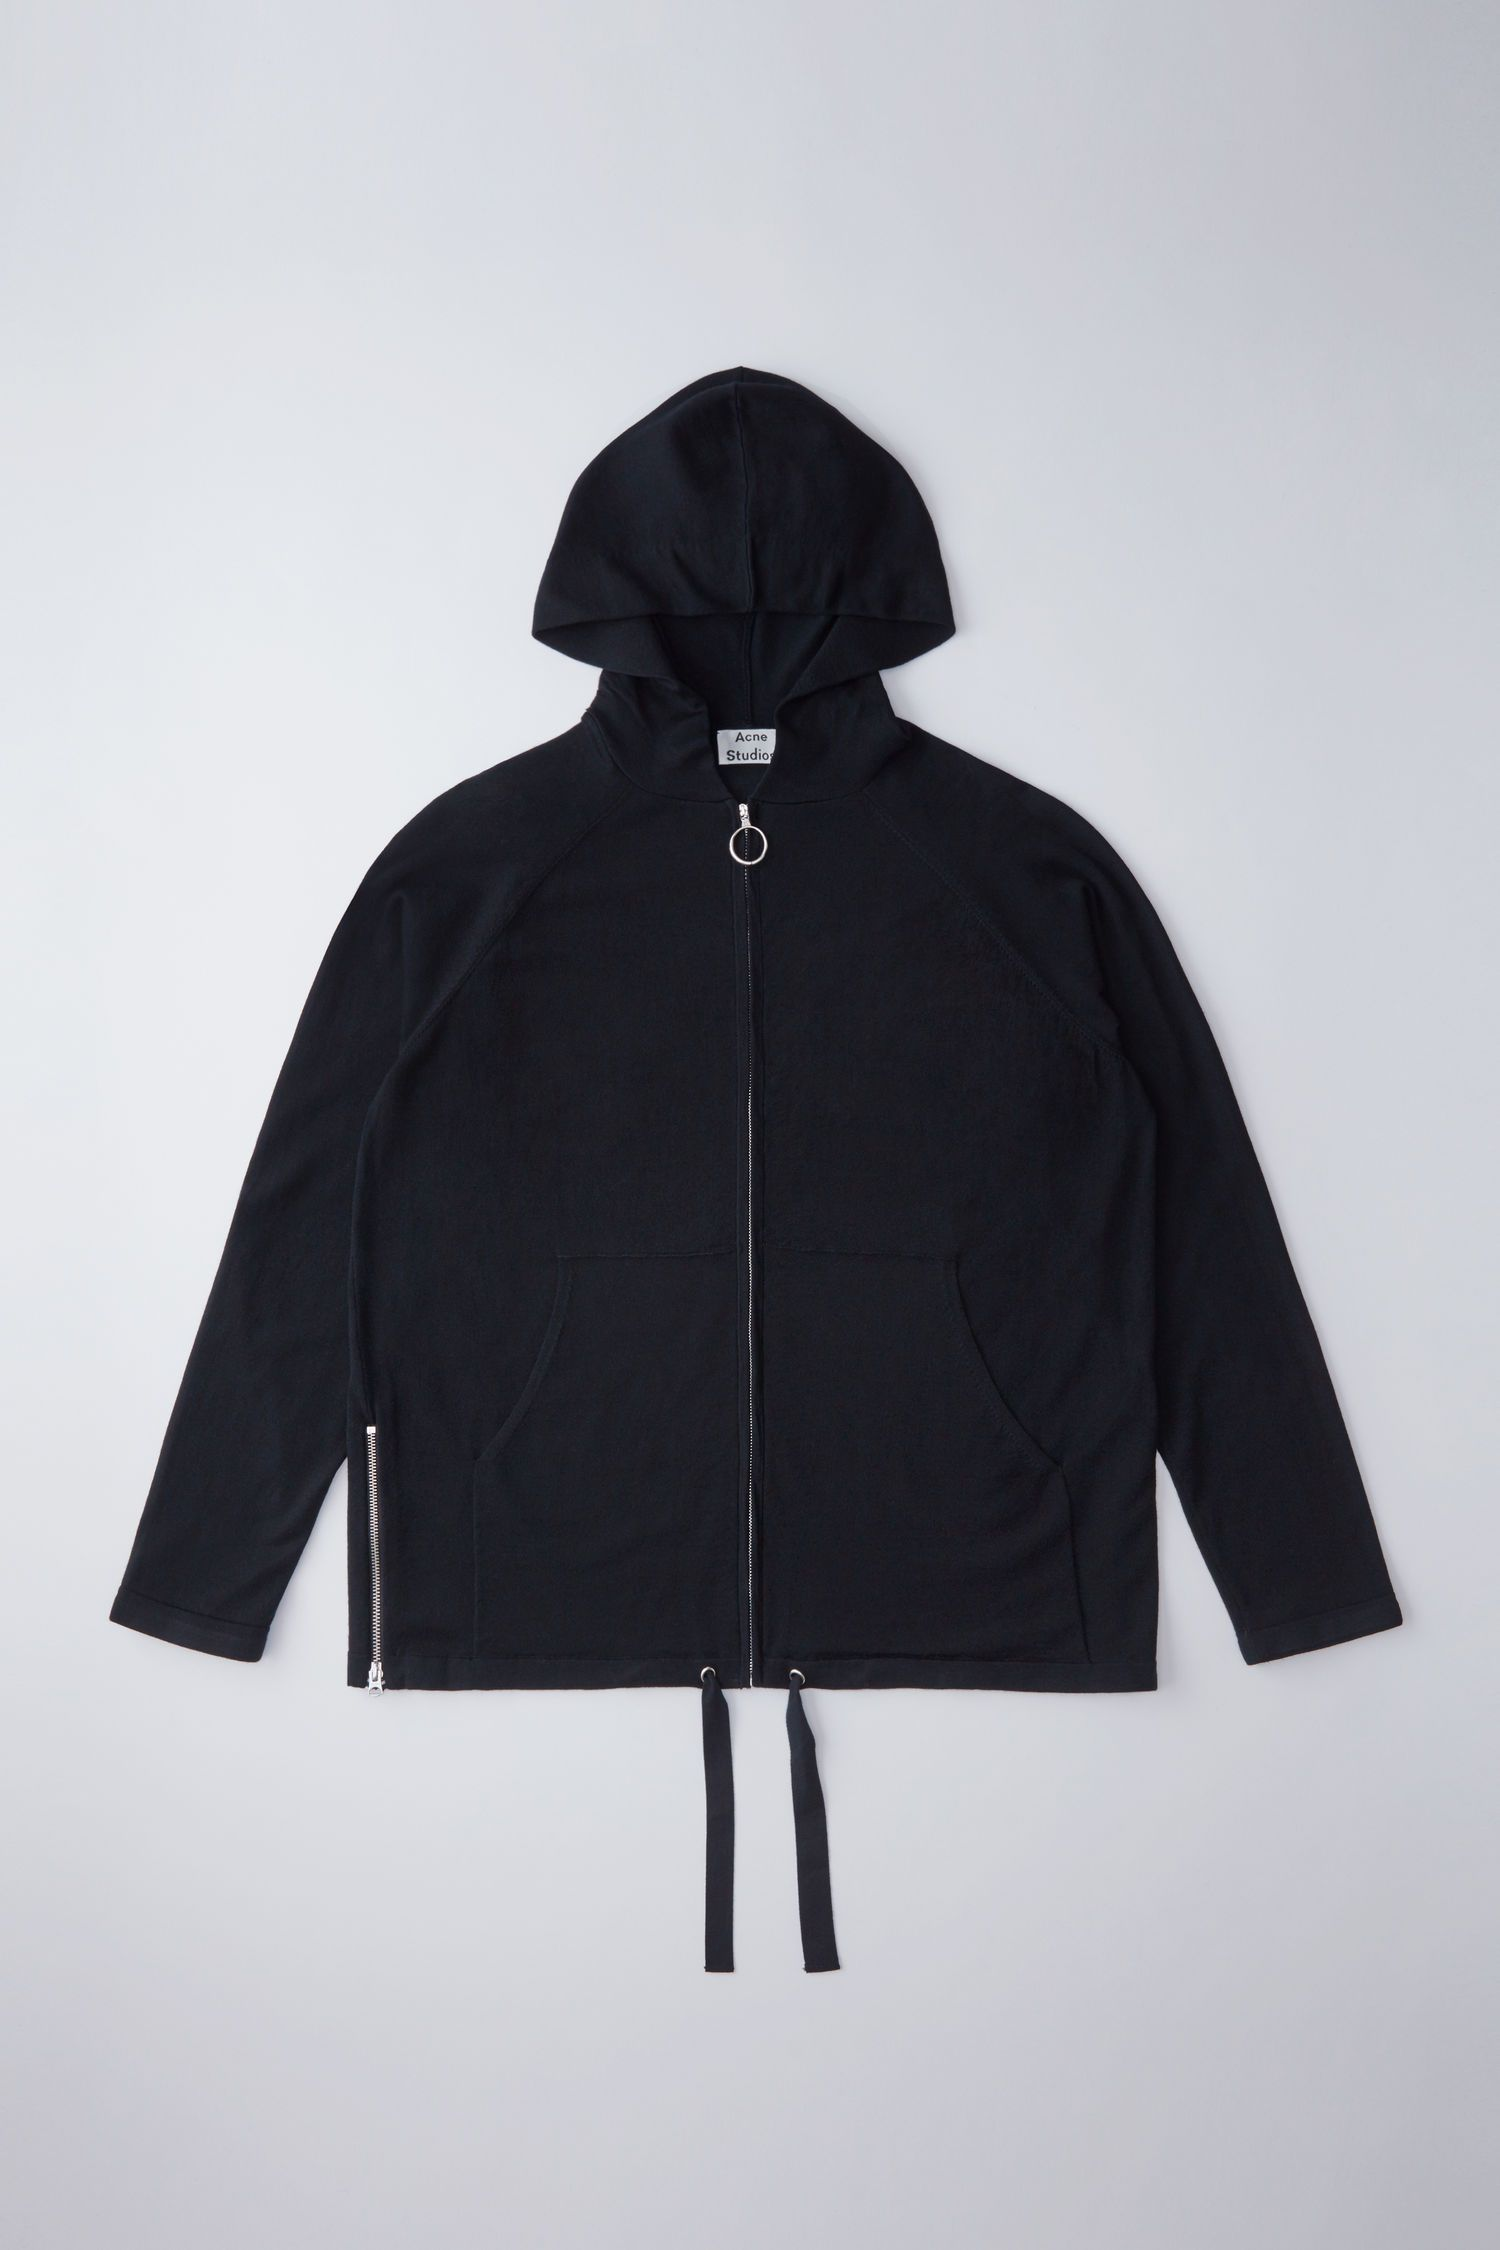 Acne Studios Kabel Black Hoodie | On Menswear | Pinterest | Acne studios